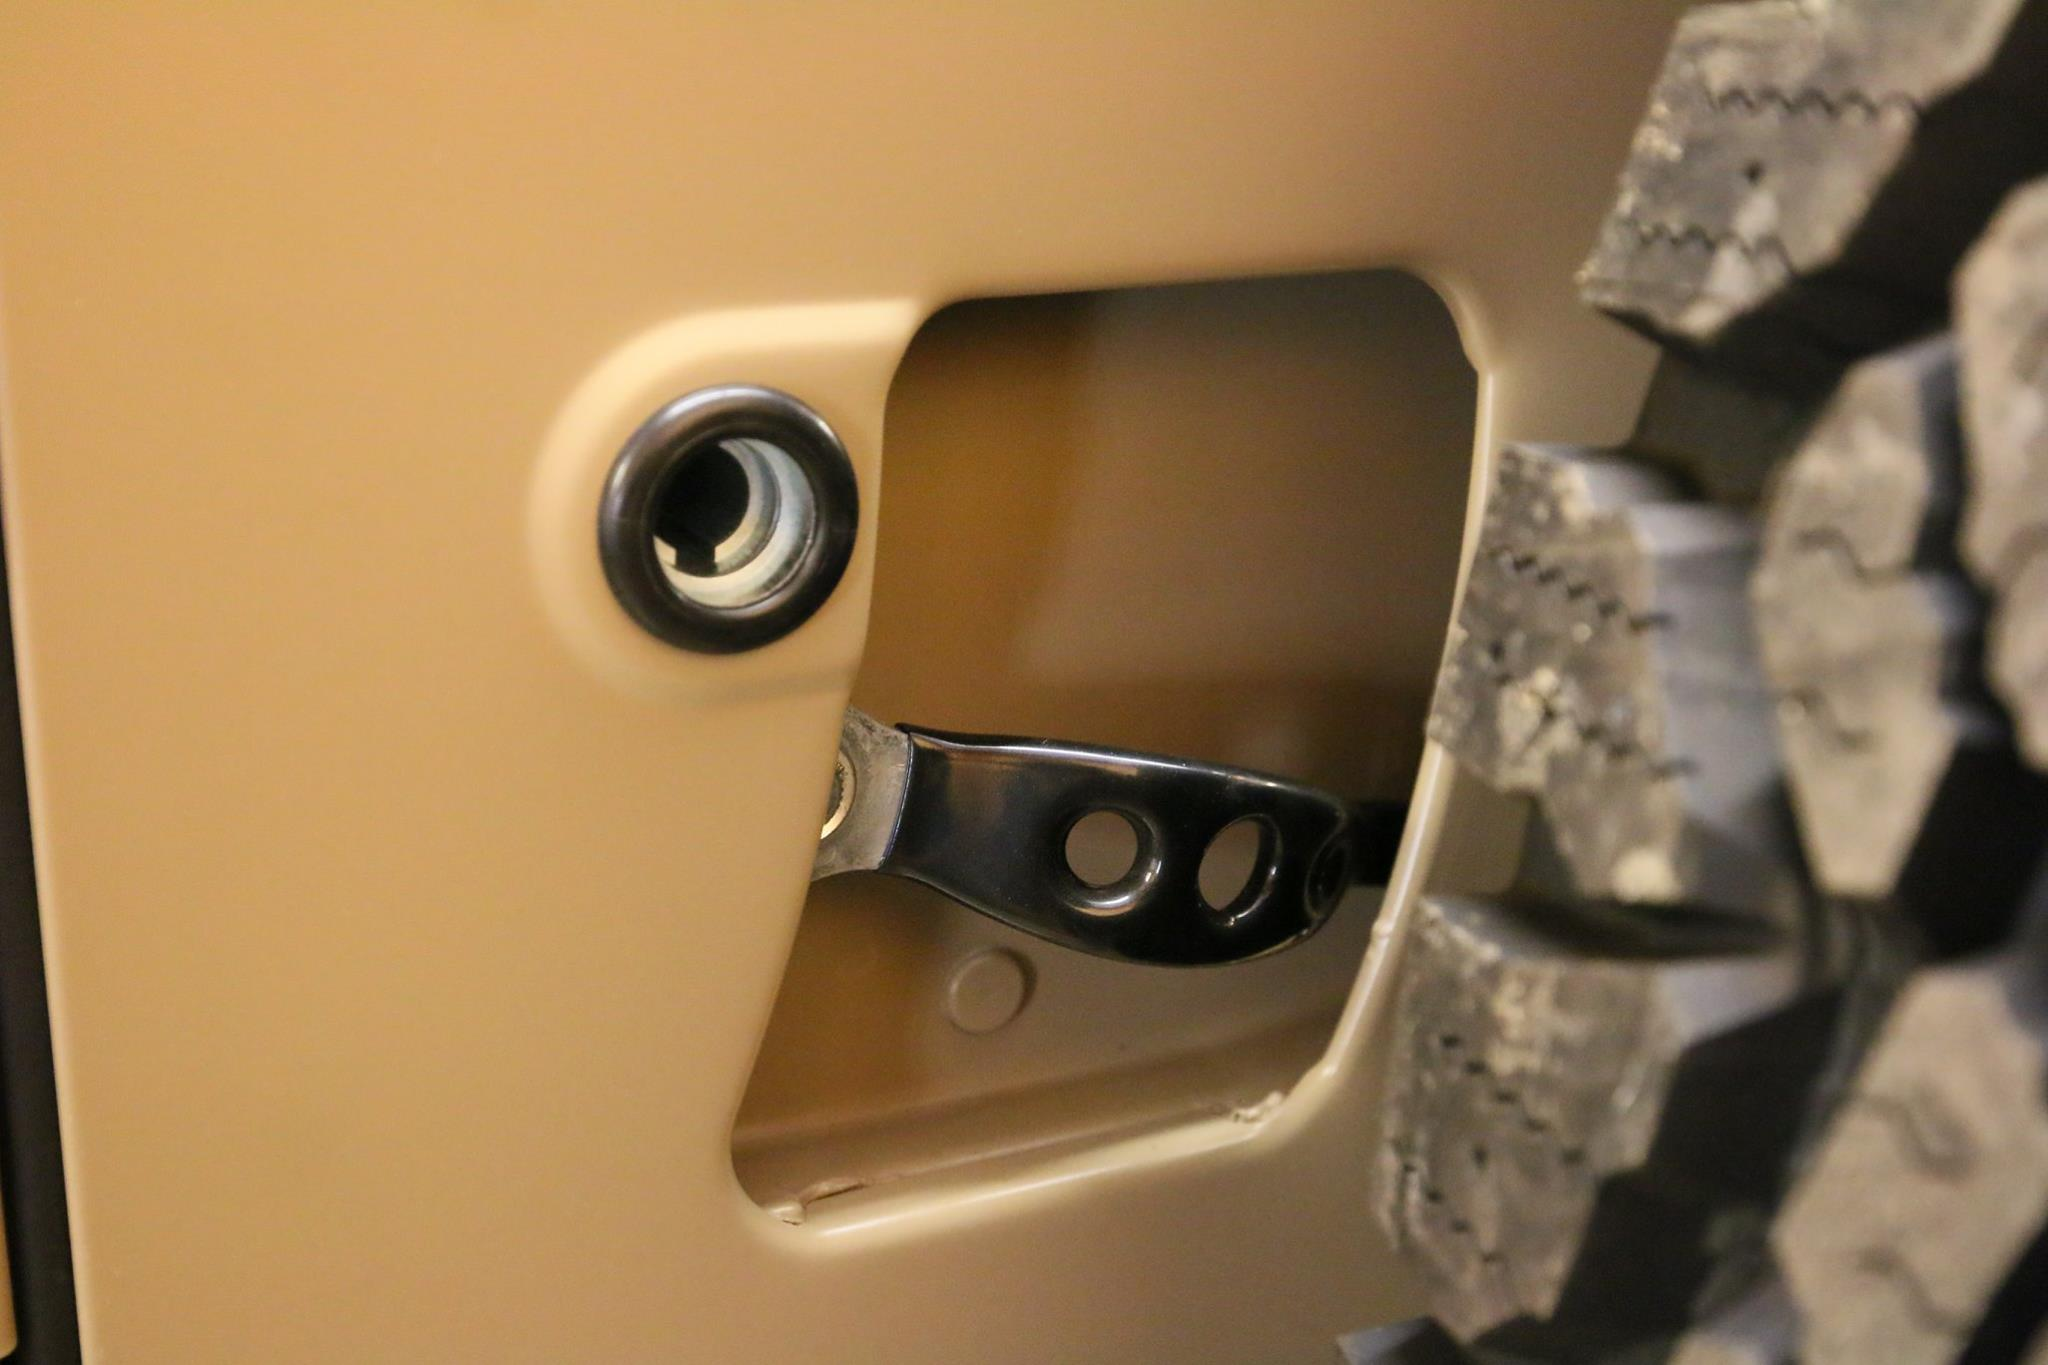 Genuine door latch handle.